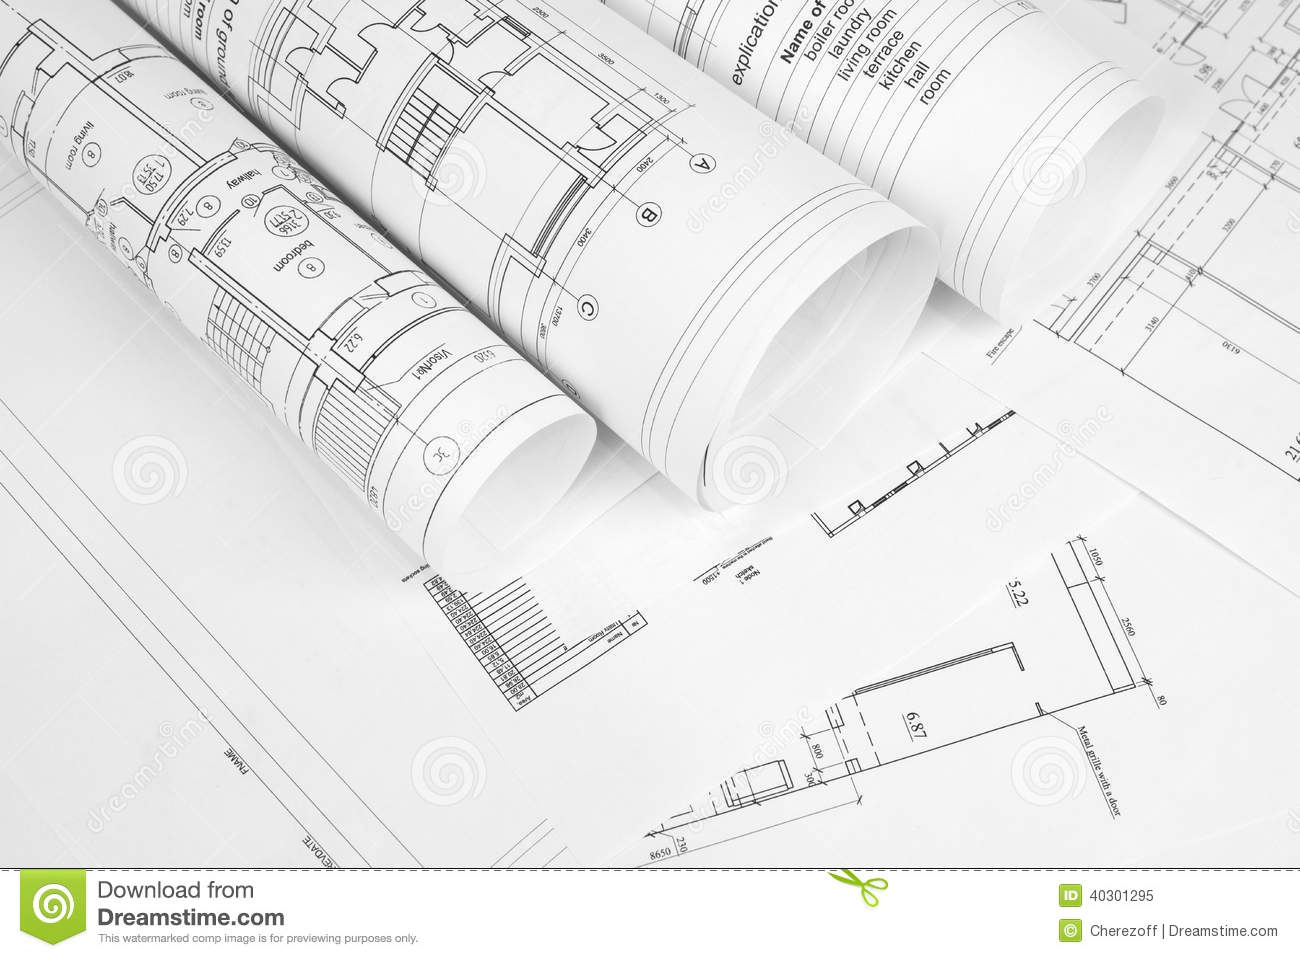 Scrolls of architectural drawings stock image image of for Paper for architectural drawings